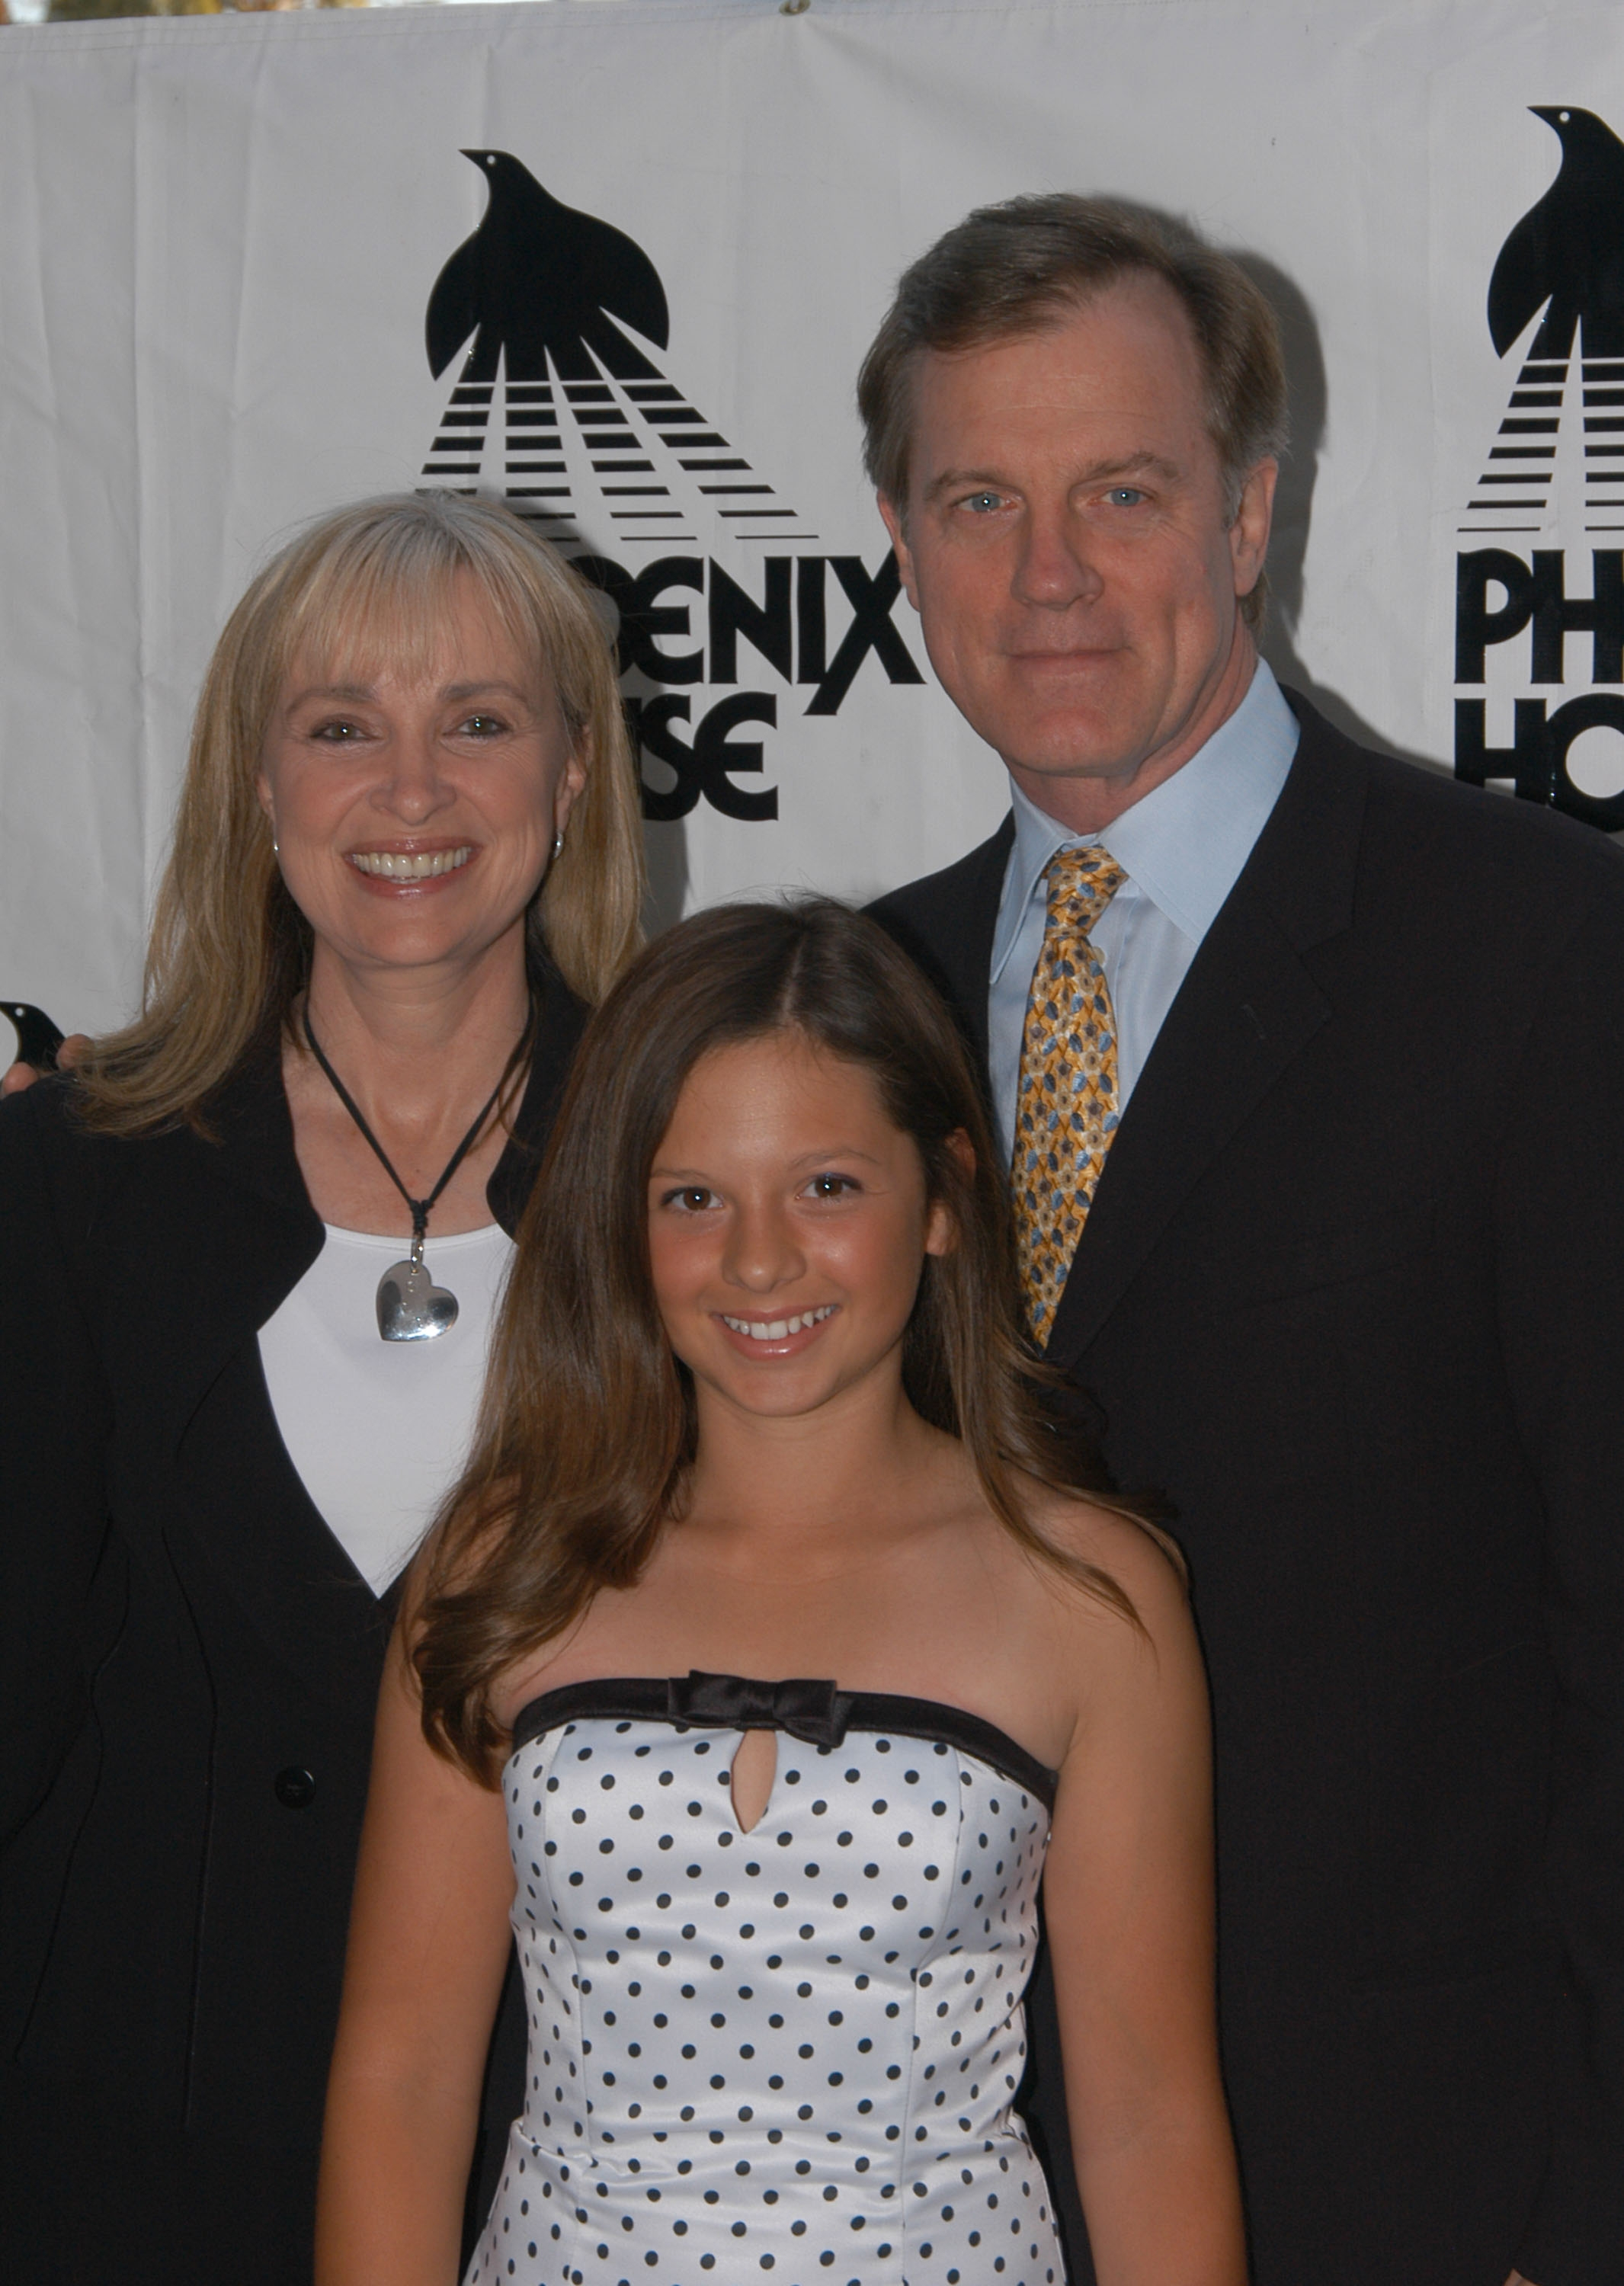 Photos de Mackenzie Rosman - Teens Awards Gala 05.01.2004 - 5